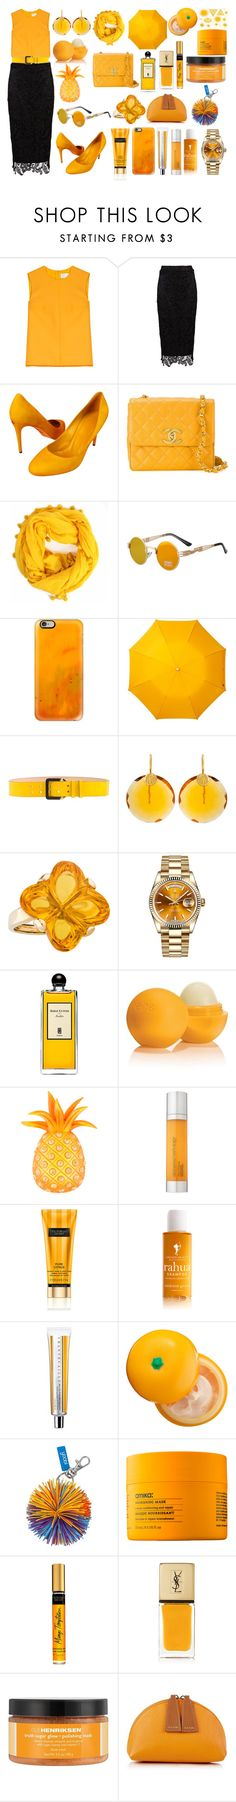 """Sin título #2200"" by magui06 ❤ liked on Polyvore featuring beauty, Victoria, Victoria Beckham, Zibi London, Gucci, Chanel, Bohemia, Casetify, Leighton, Dsquared2 and Kastur Jewels"